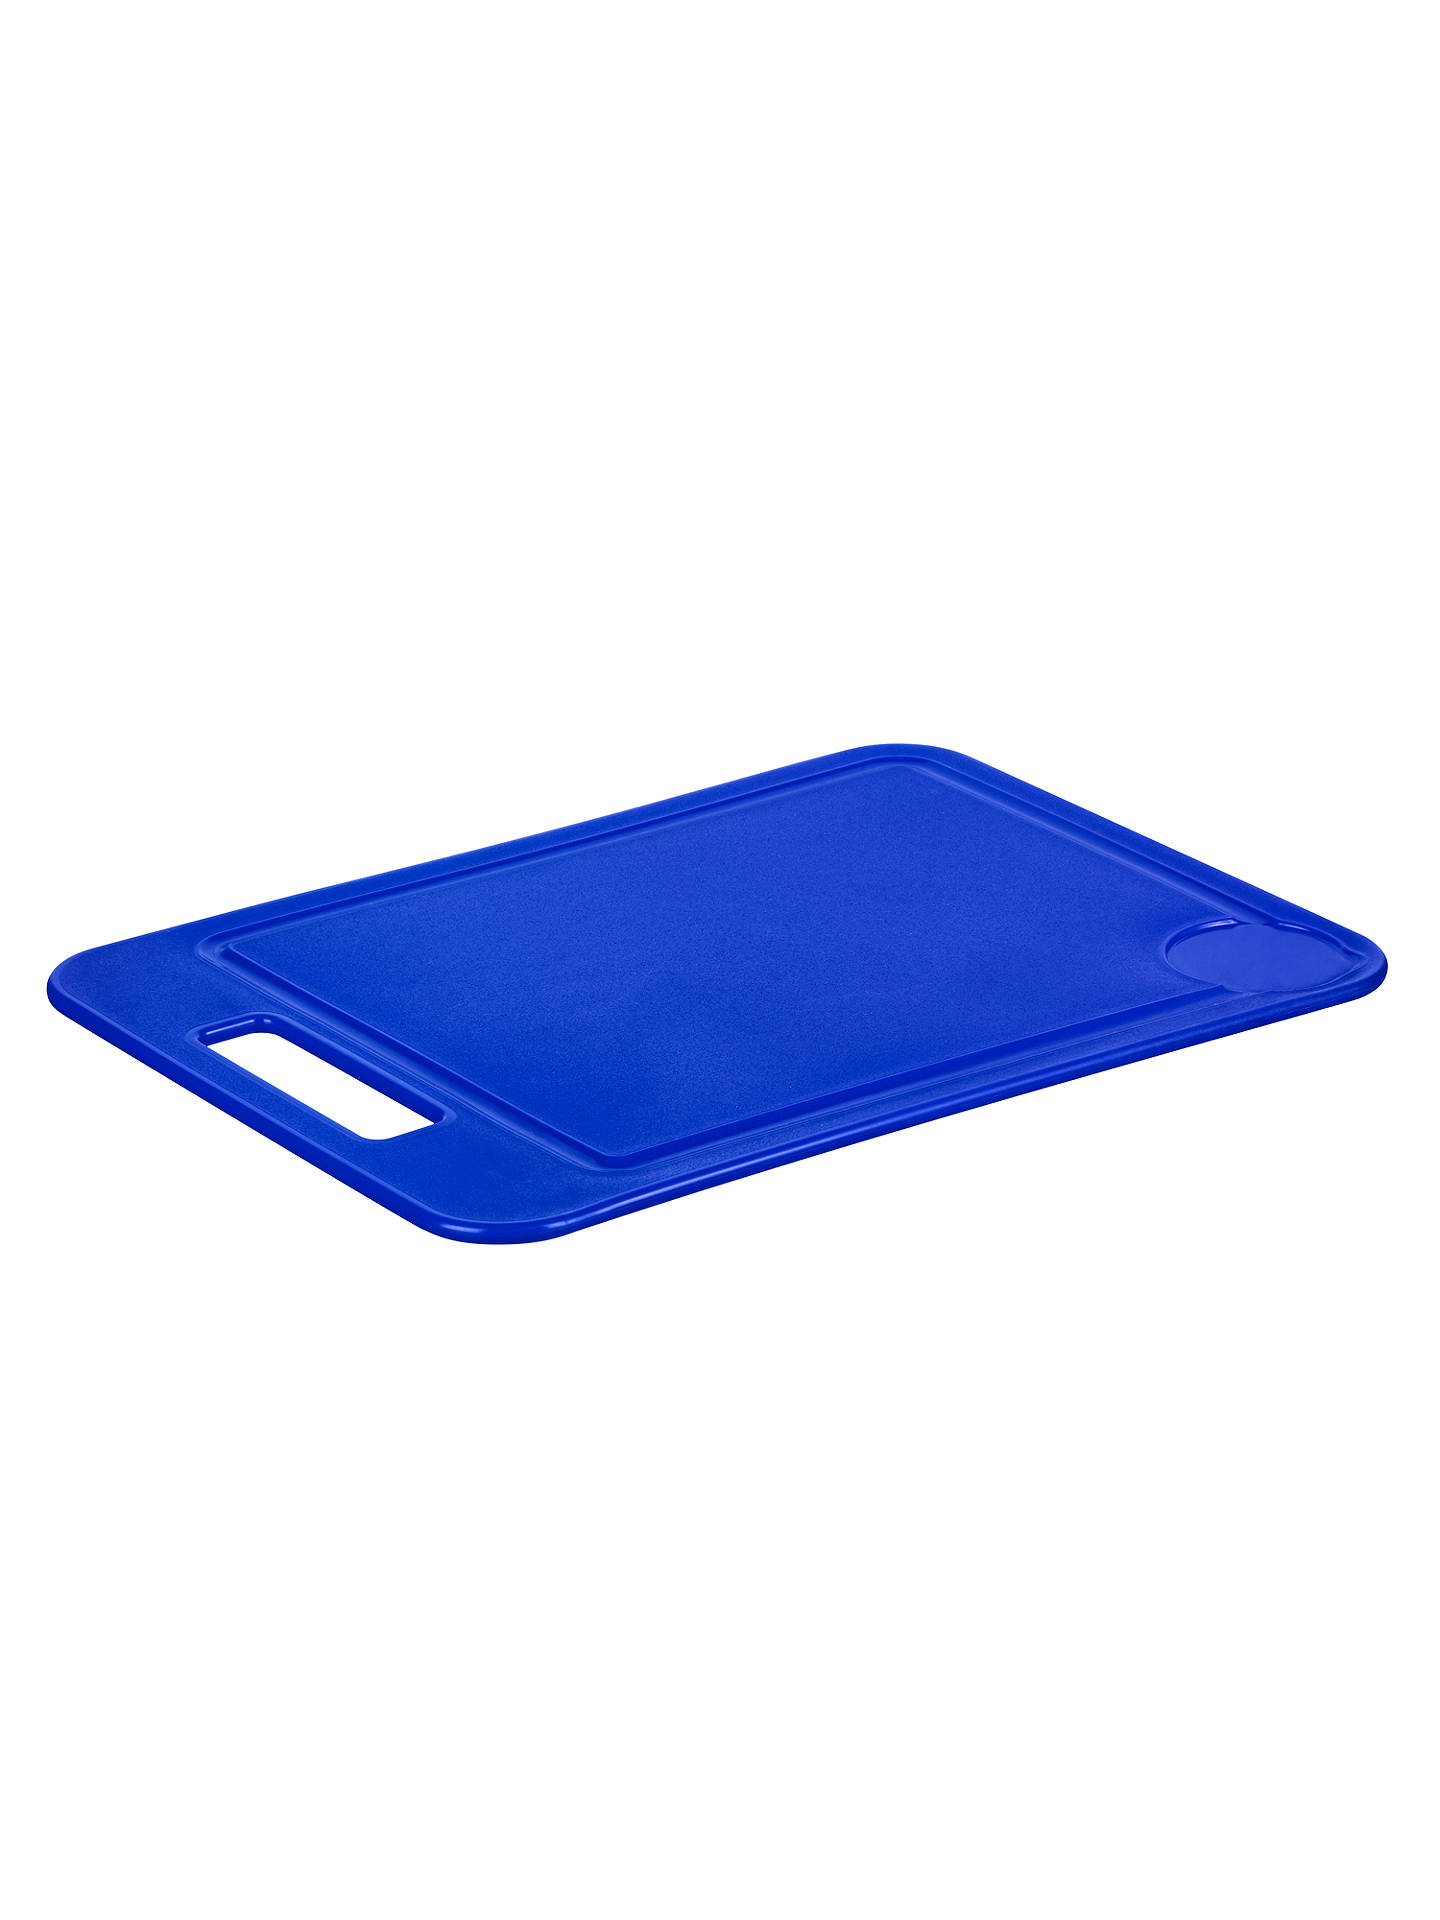 BuyJohn Lewis & Partners The Basics Chopping Board, Blue Online at johnlewis.com